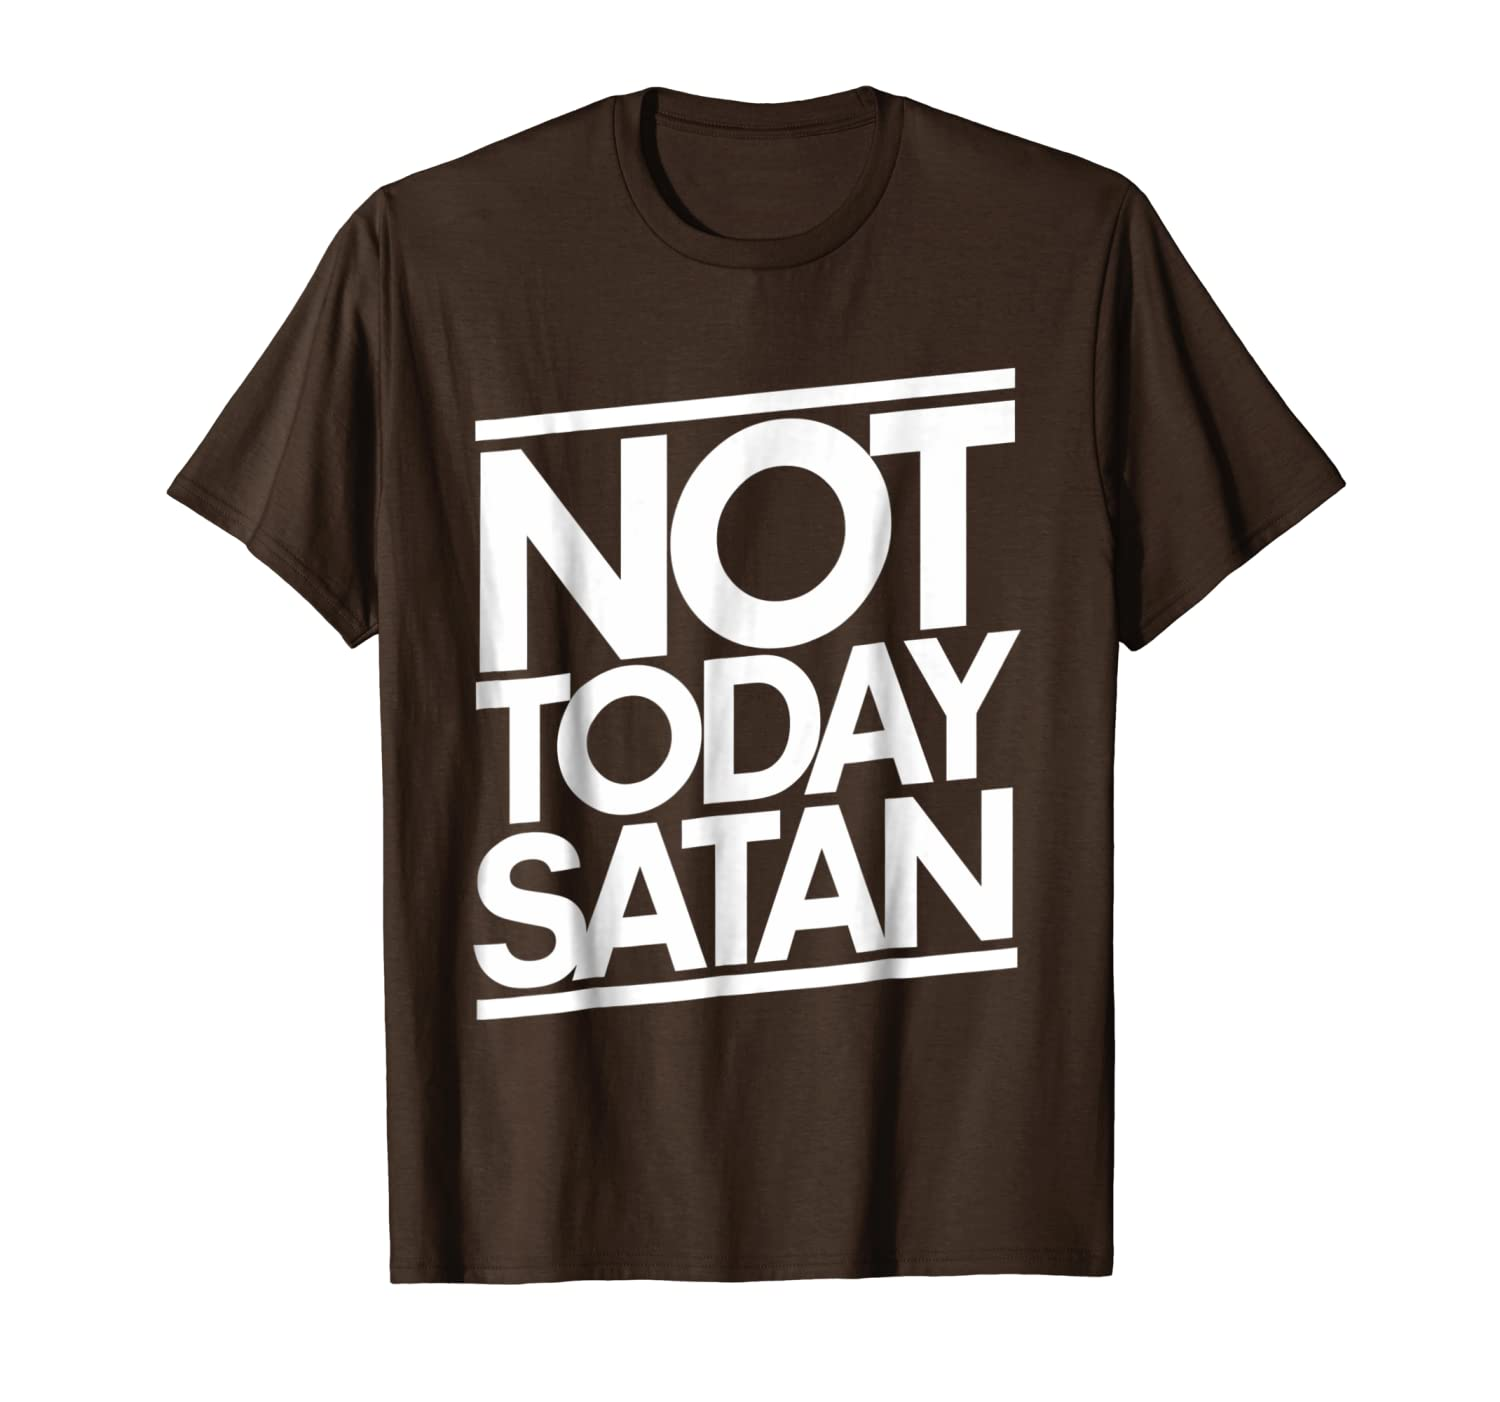 006a4a15f Amazon.com: Not today Satan shirt funny t-shirt nope not today: Clothing